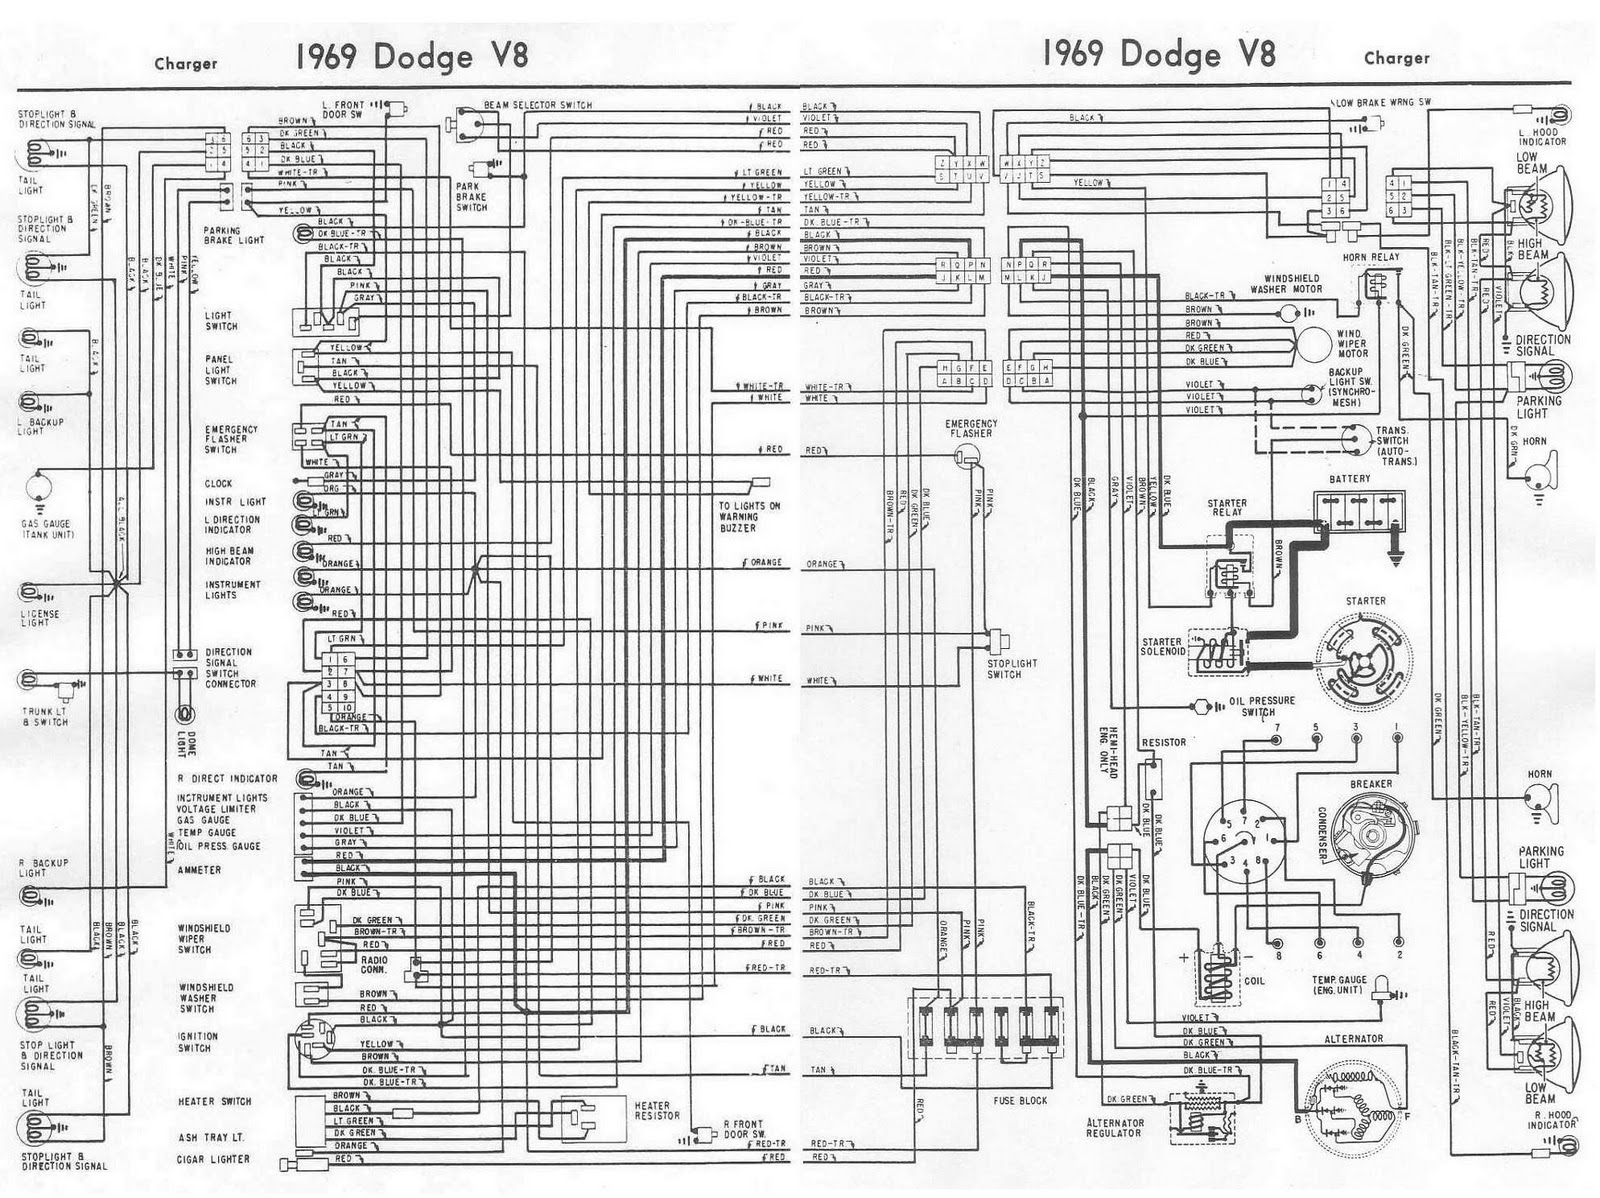 1969+Dodge+Charger+V8+Complete+Wiring+Diagram dodge charger 1969 v8 complete electrical wiring diagram all dodge wiring diagrams at readyjetset.co